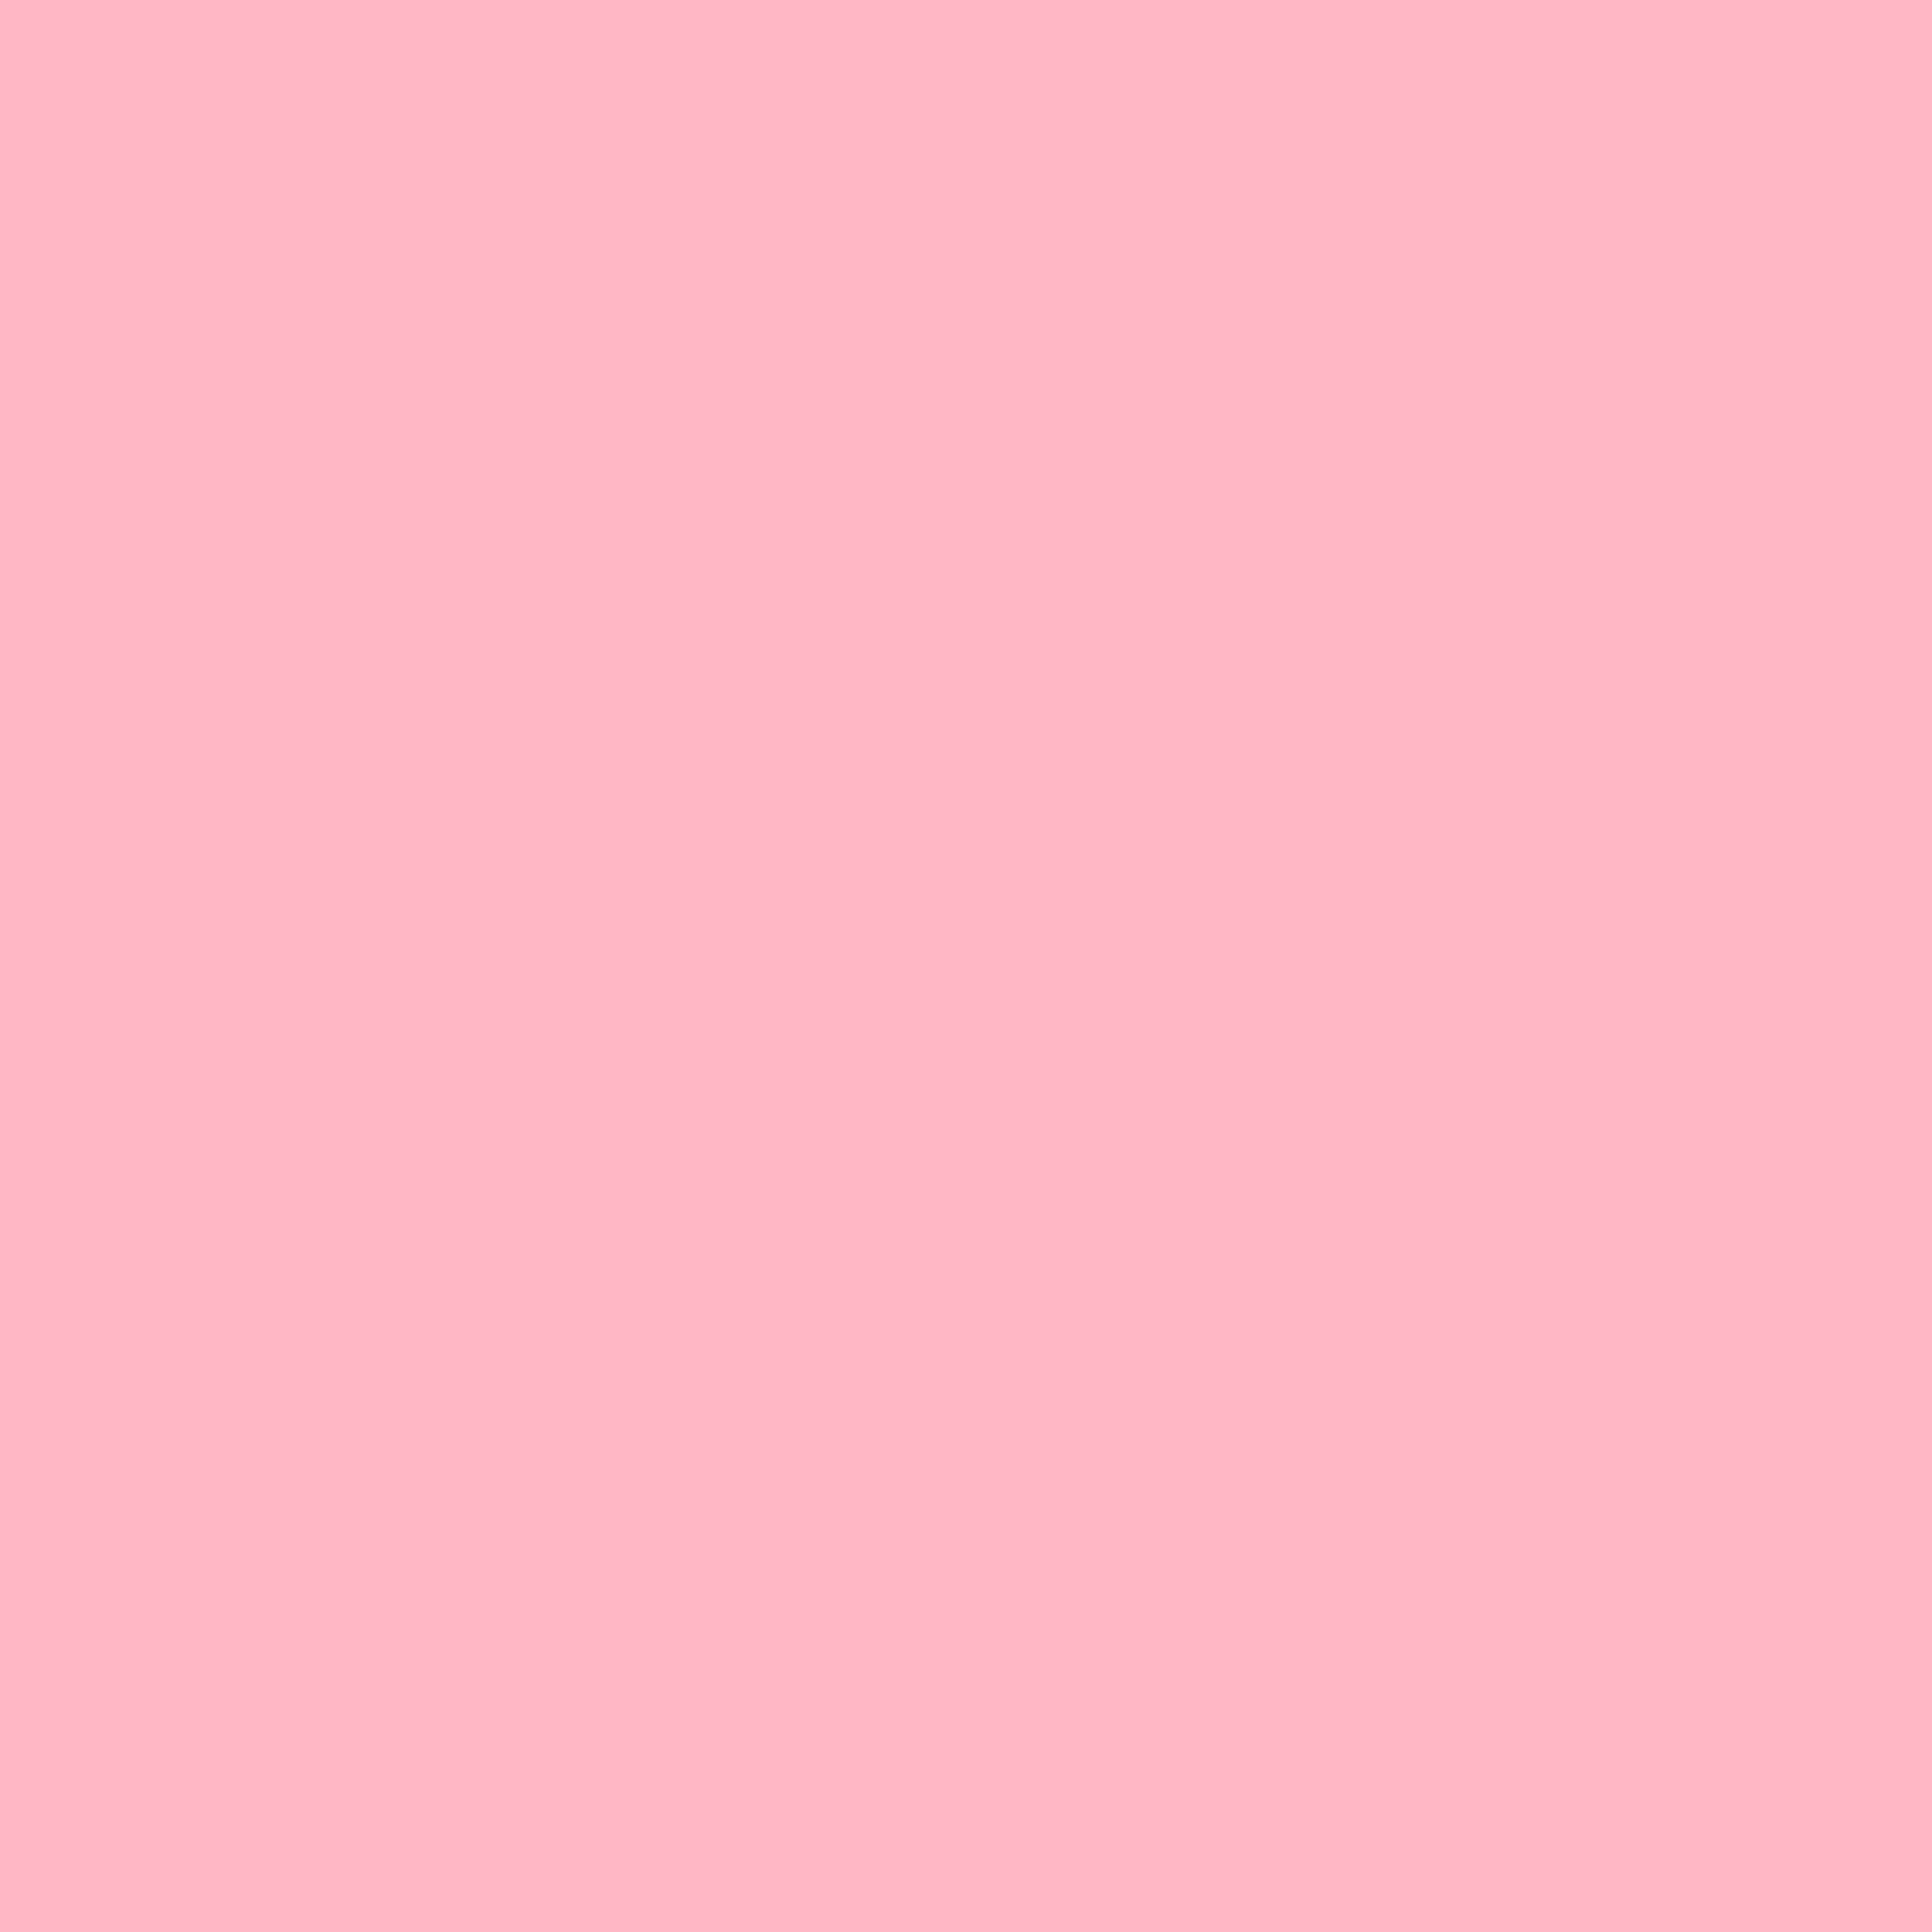 2732x2732 Cherry Blossom Pink Solid Color Background